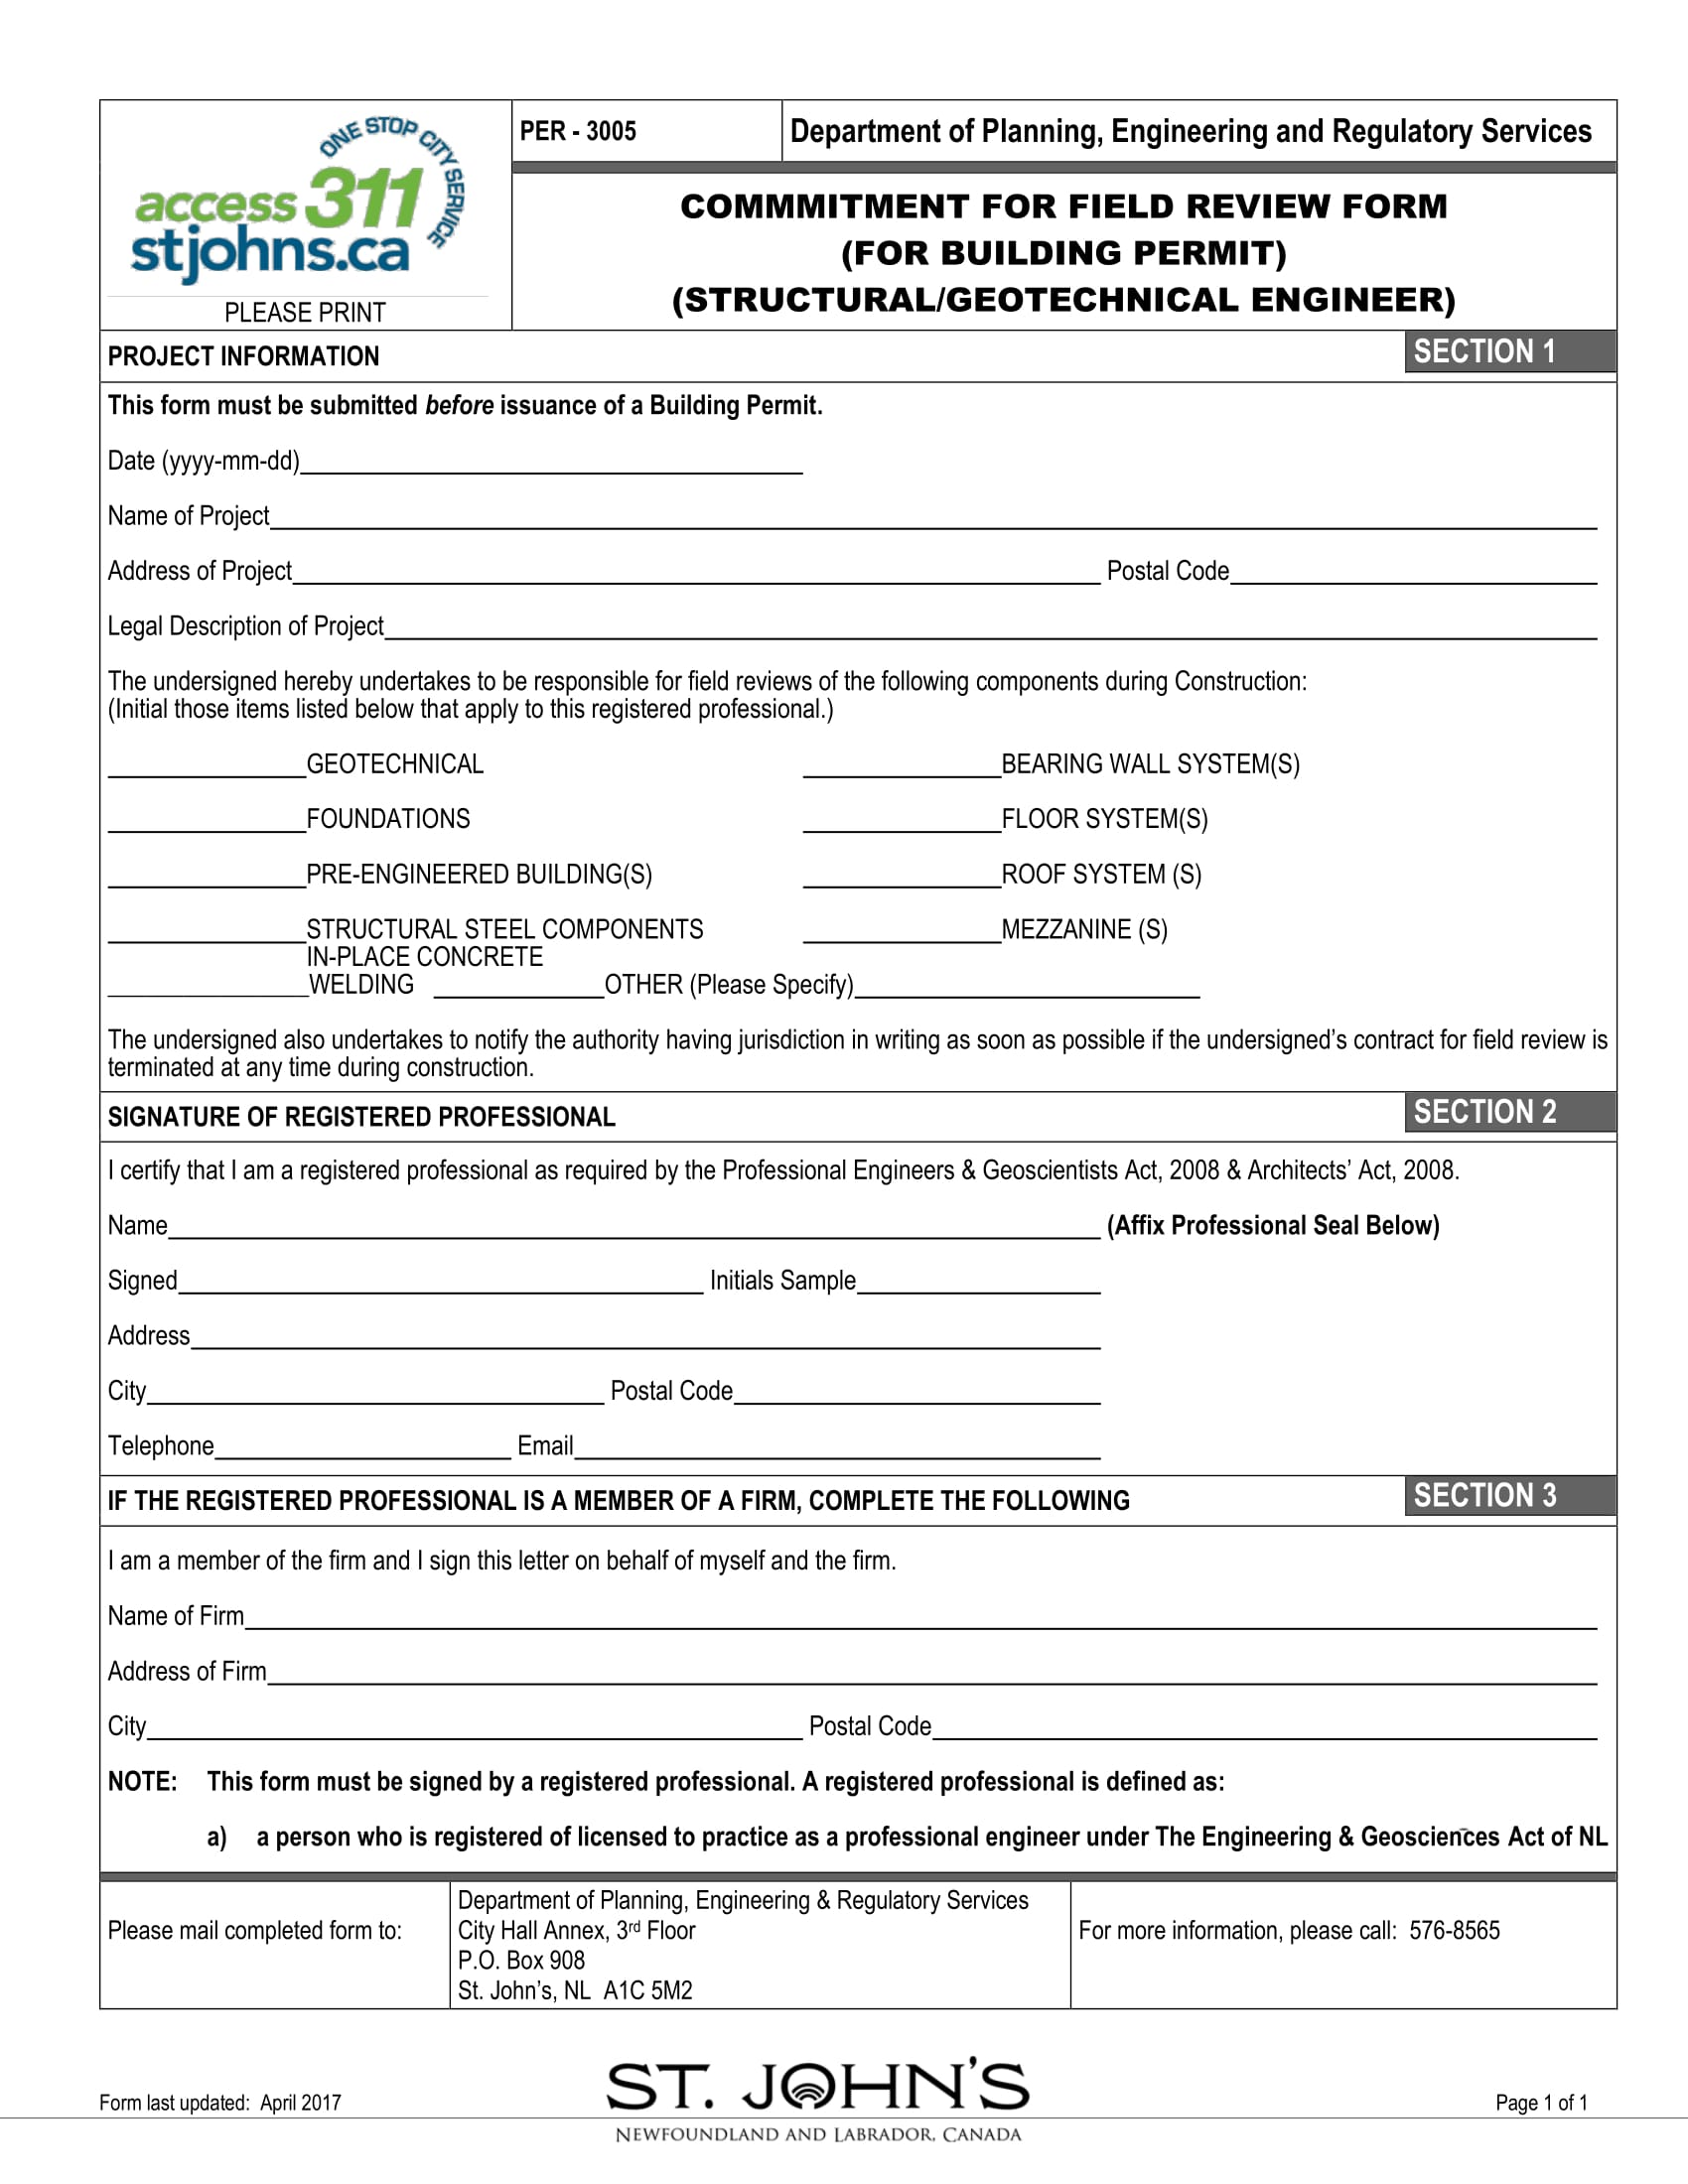 commitment for field review form 1